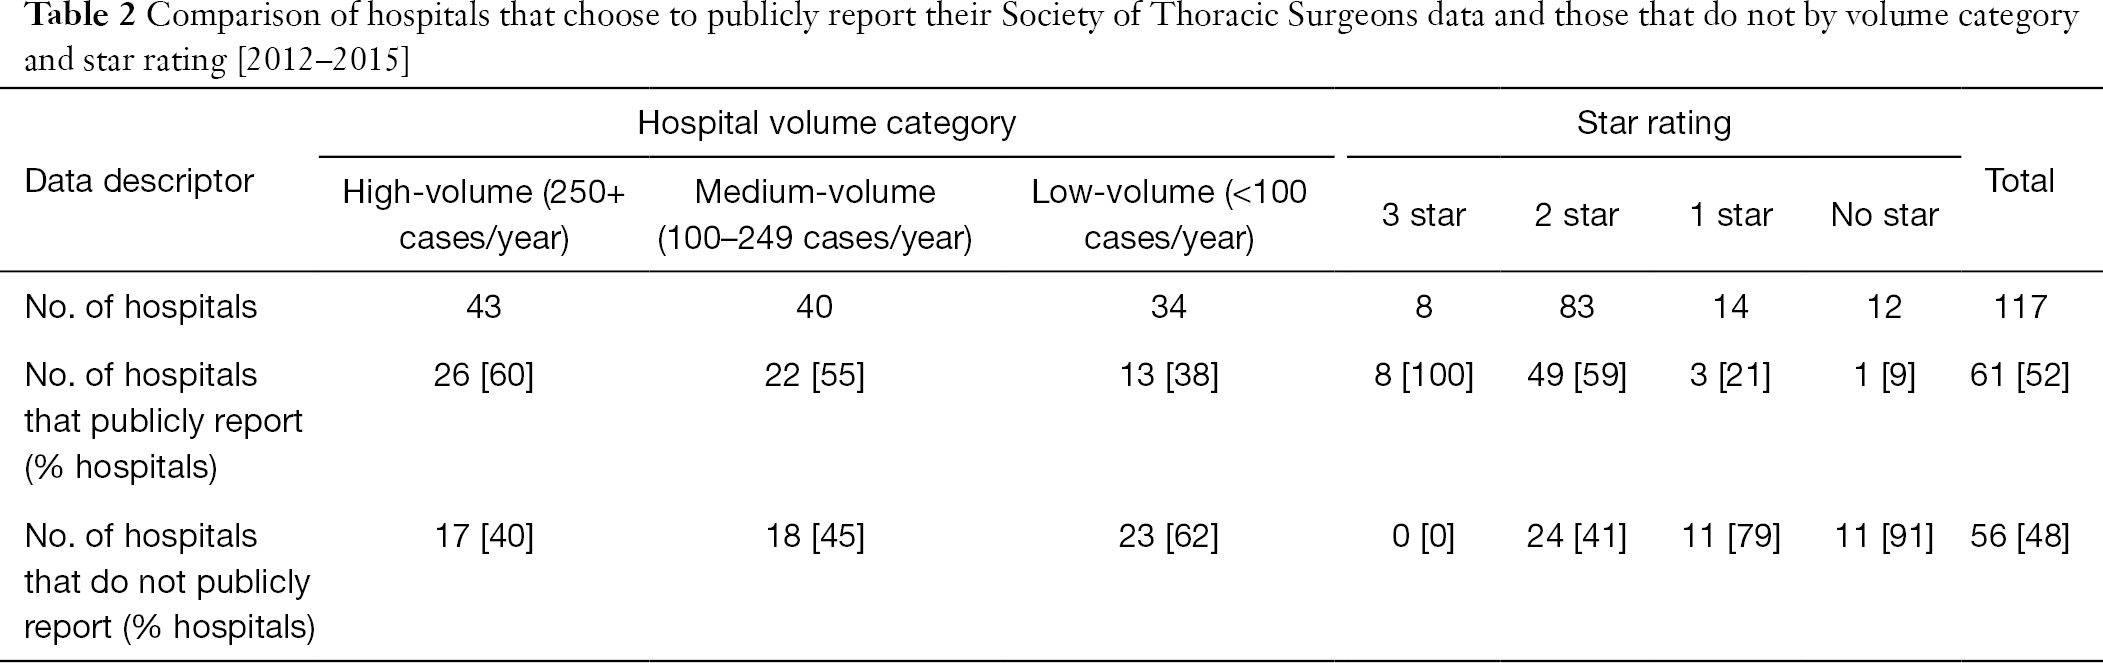 An analysis of publicly reported pediatric heart surgery